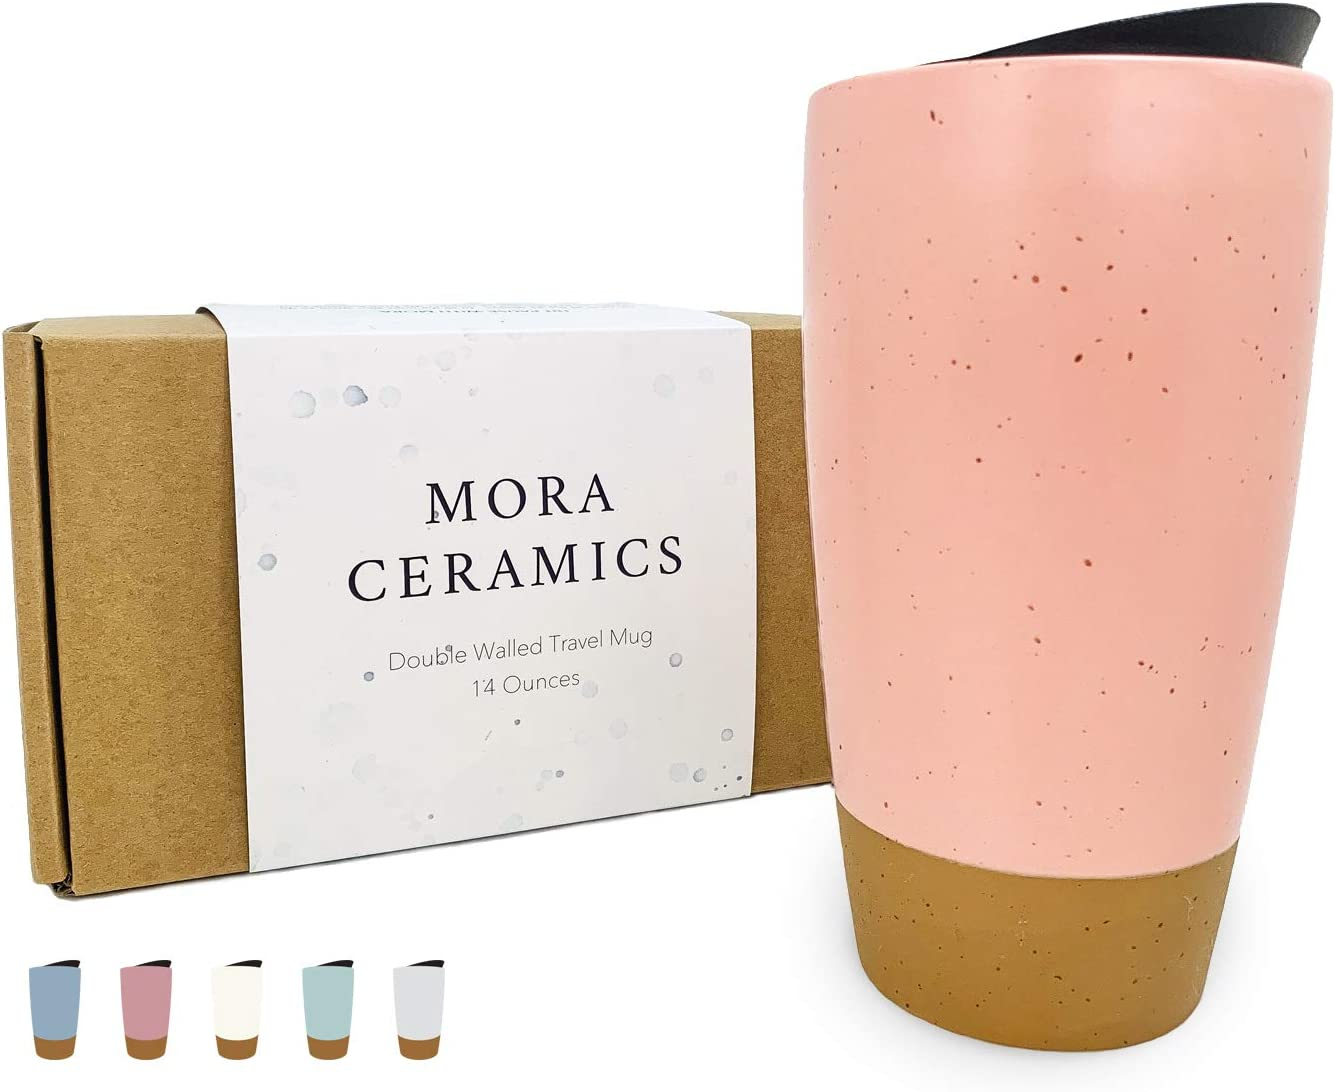 Mora Double Wall Ceramic Travel Coffee Mug with Lid, 14 oz, Portable, Microwave, Dishwasher Safe, Insulated Reusable Tall Cup, Splash Proof Spinning Lid - To Go Tumbler for Car Cup Holder, Pink Salt